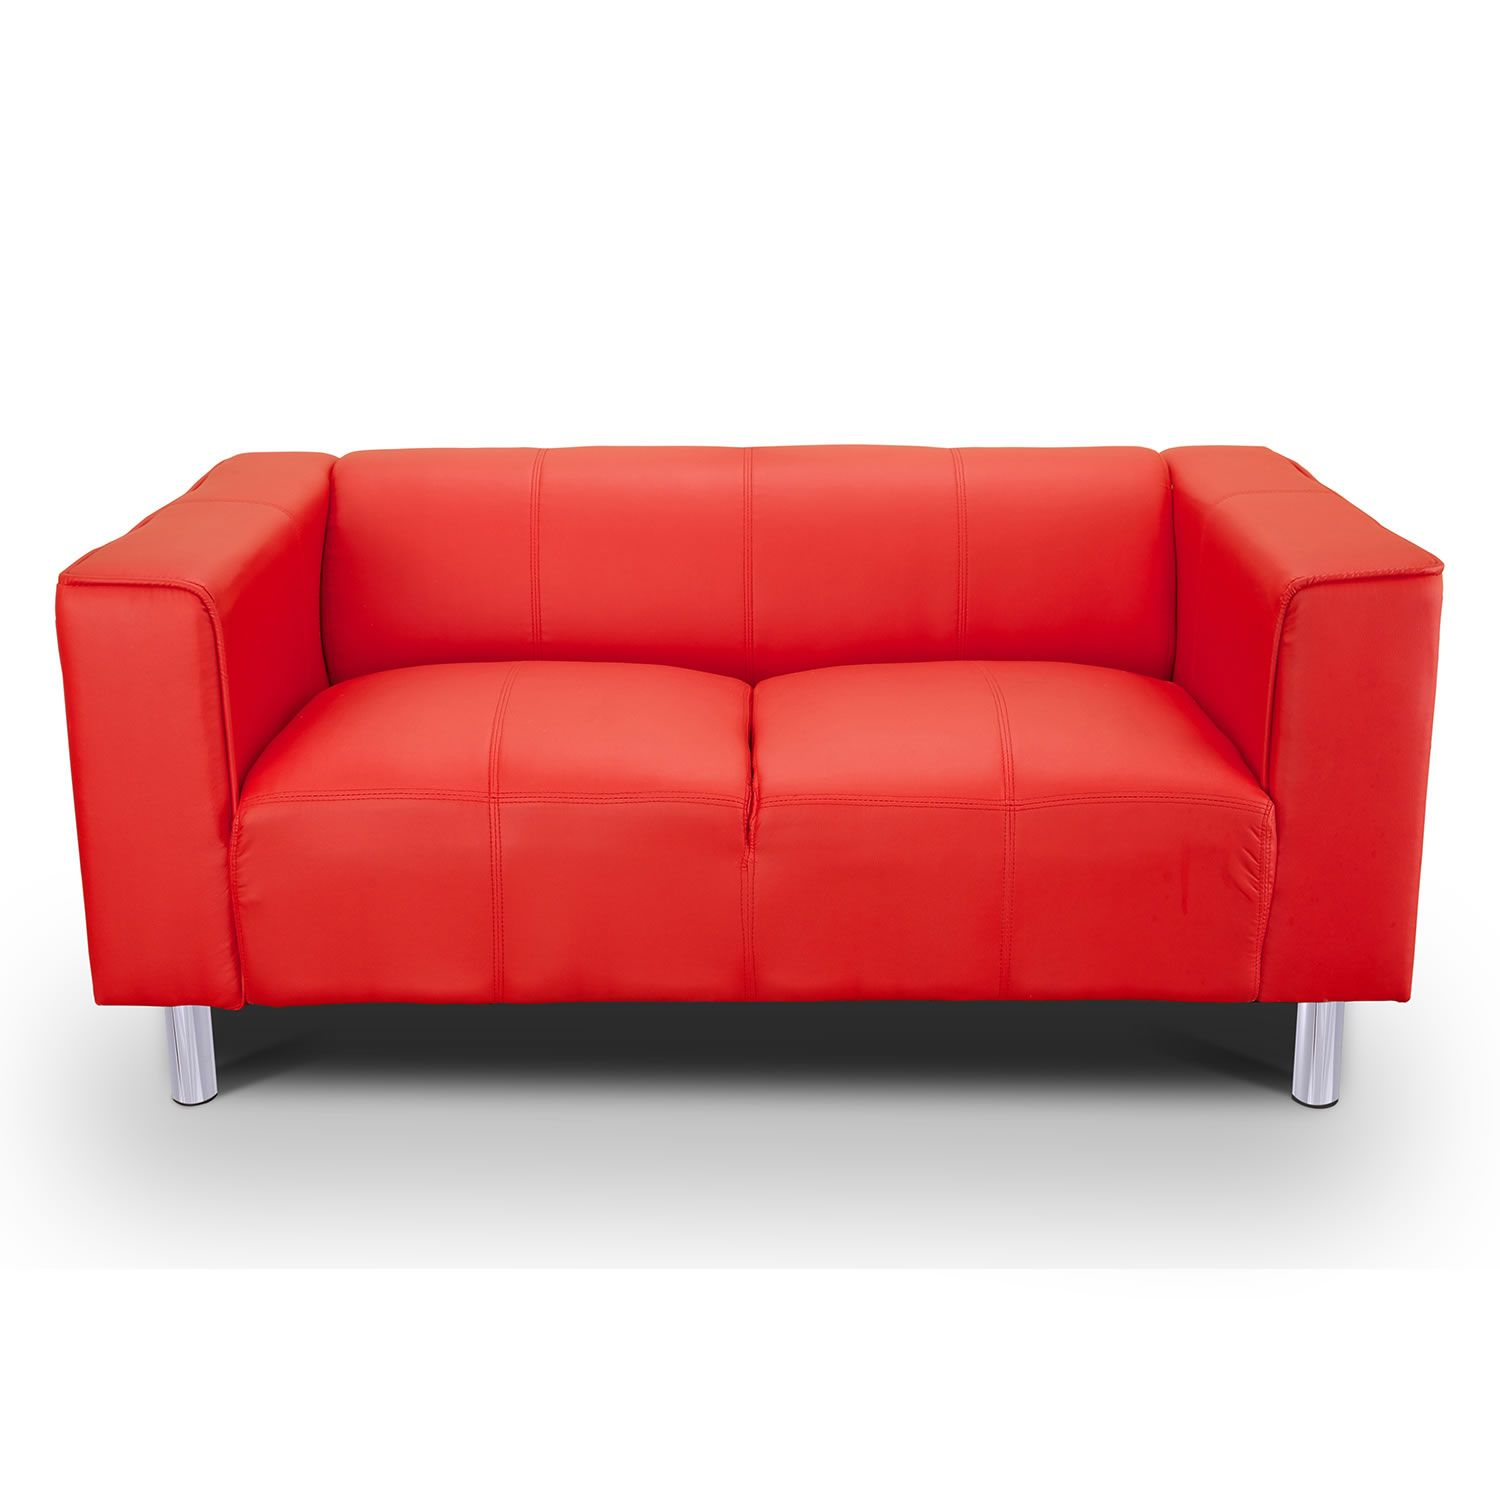 Two Seater Sofa A Space Saving Piece Of Furniture To Add Charm And Functionality Best Leather Sofa Faux Leather Sofa Red Fabric Sofa